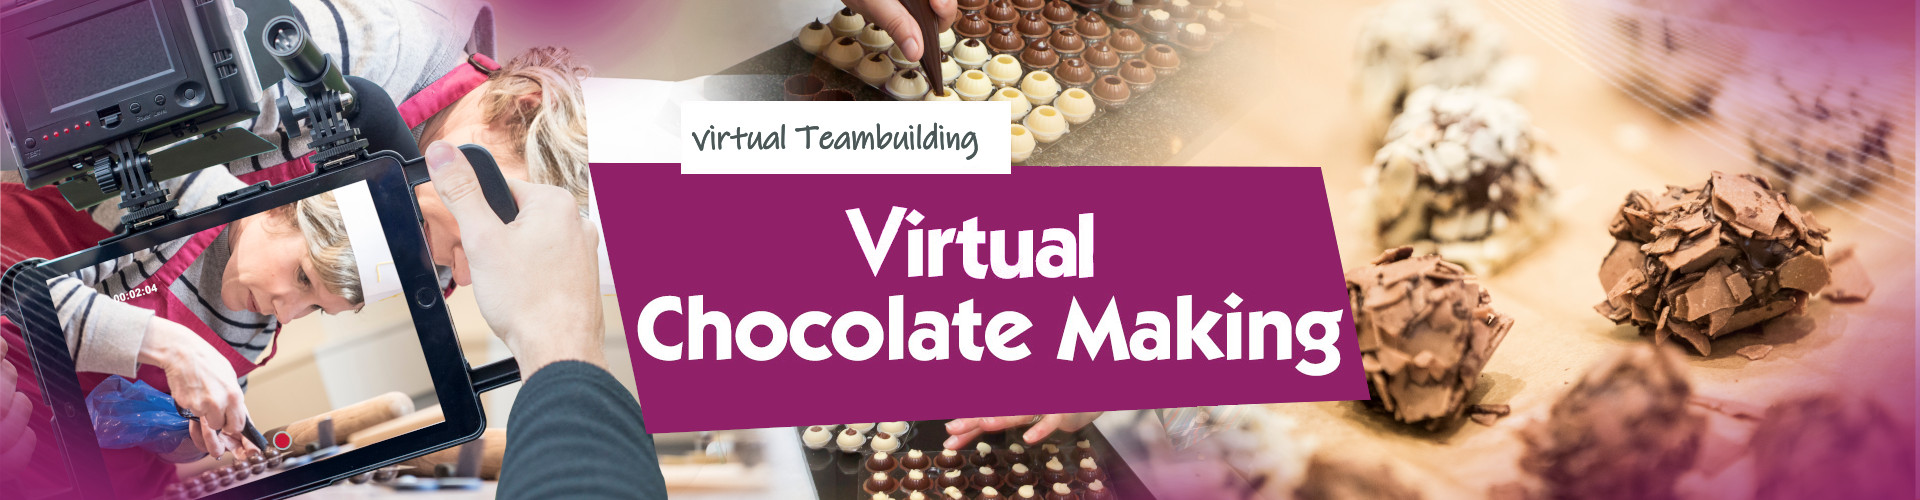 Virtual-Chocolate-Making-Banner